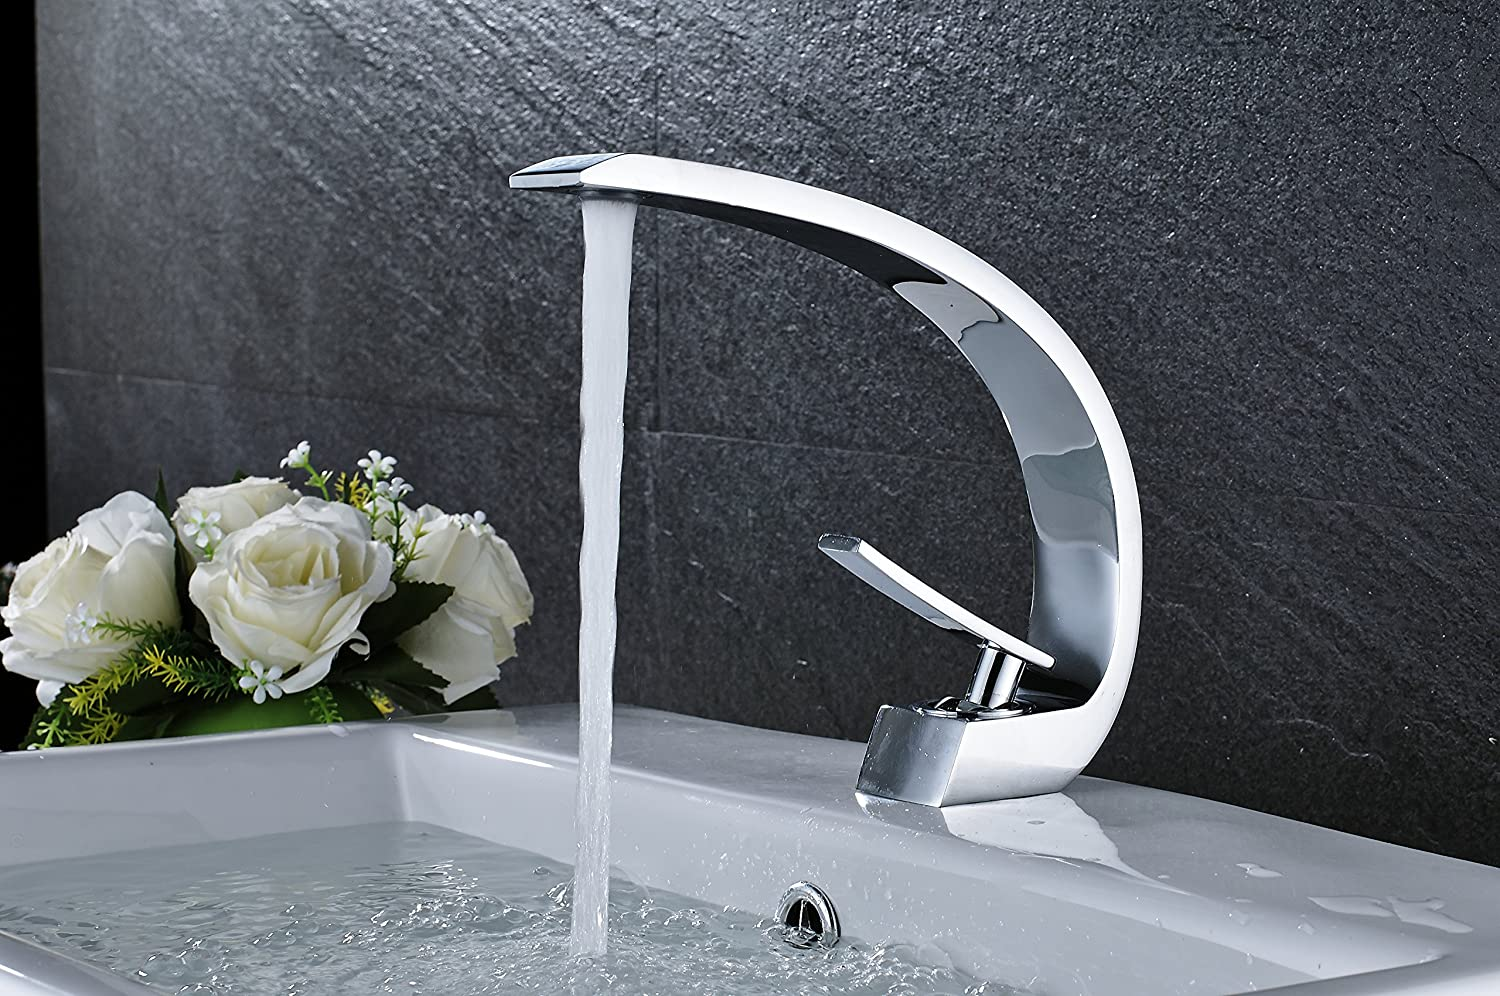 Rozin Creative Design Bathroom Sink Faucet Single Handle Mixer Tap ...